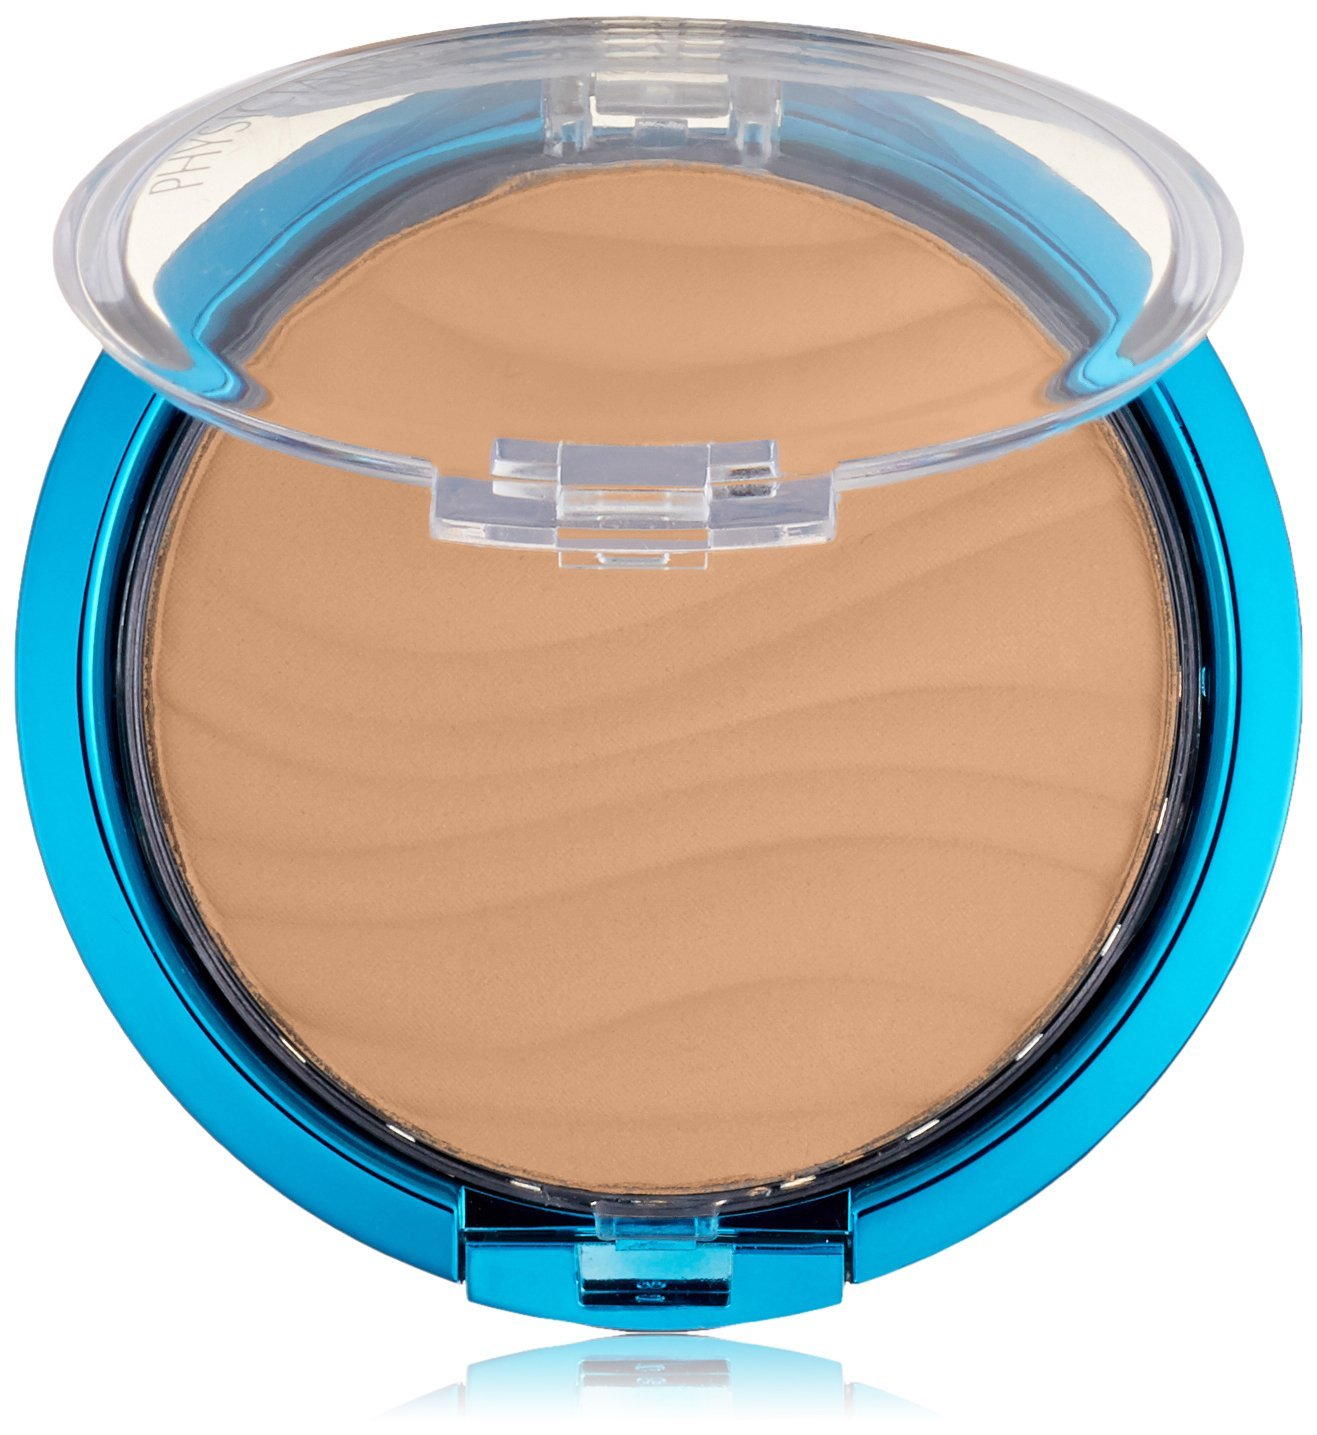 Physicians Formula Mineral Wear Talc-Free Mineral Makeup Airbrushing Pressed Powder SPF 30, 0.26 oz, Beige